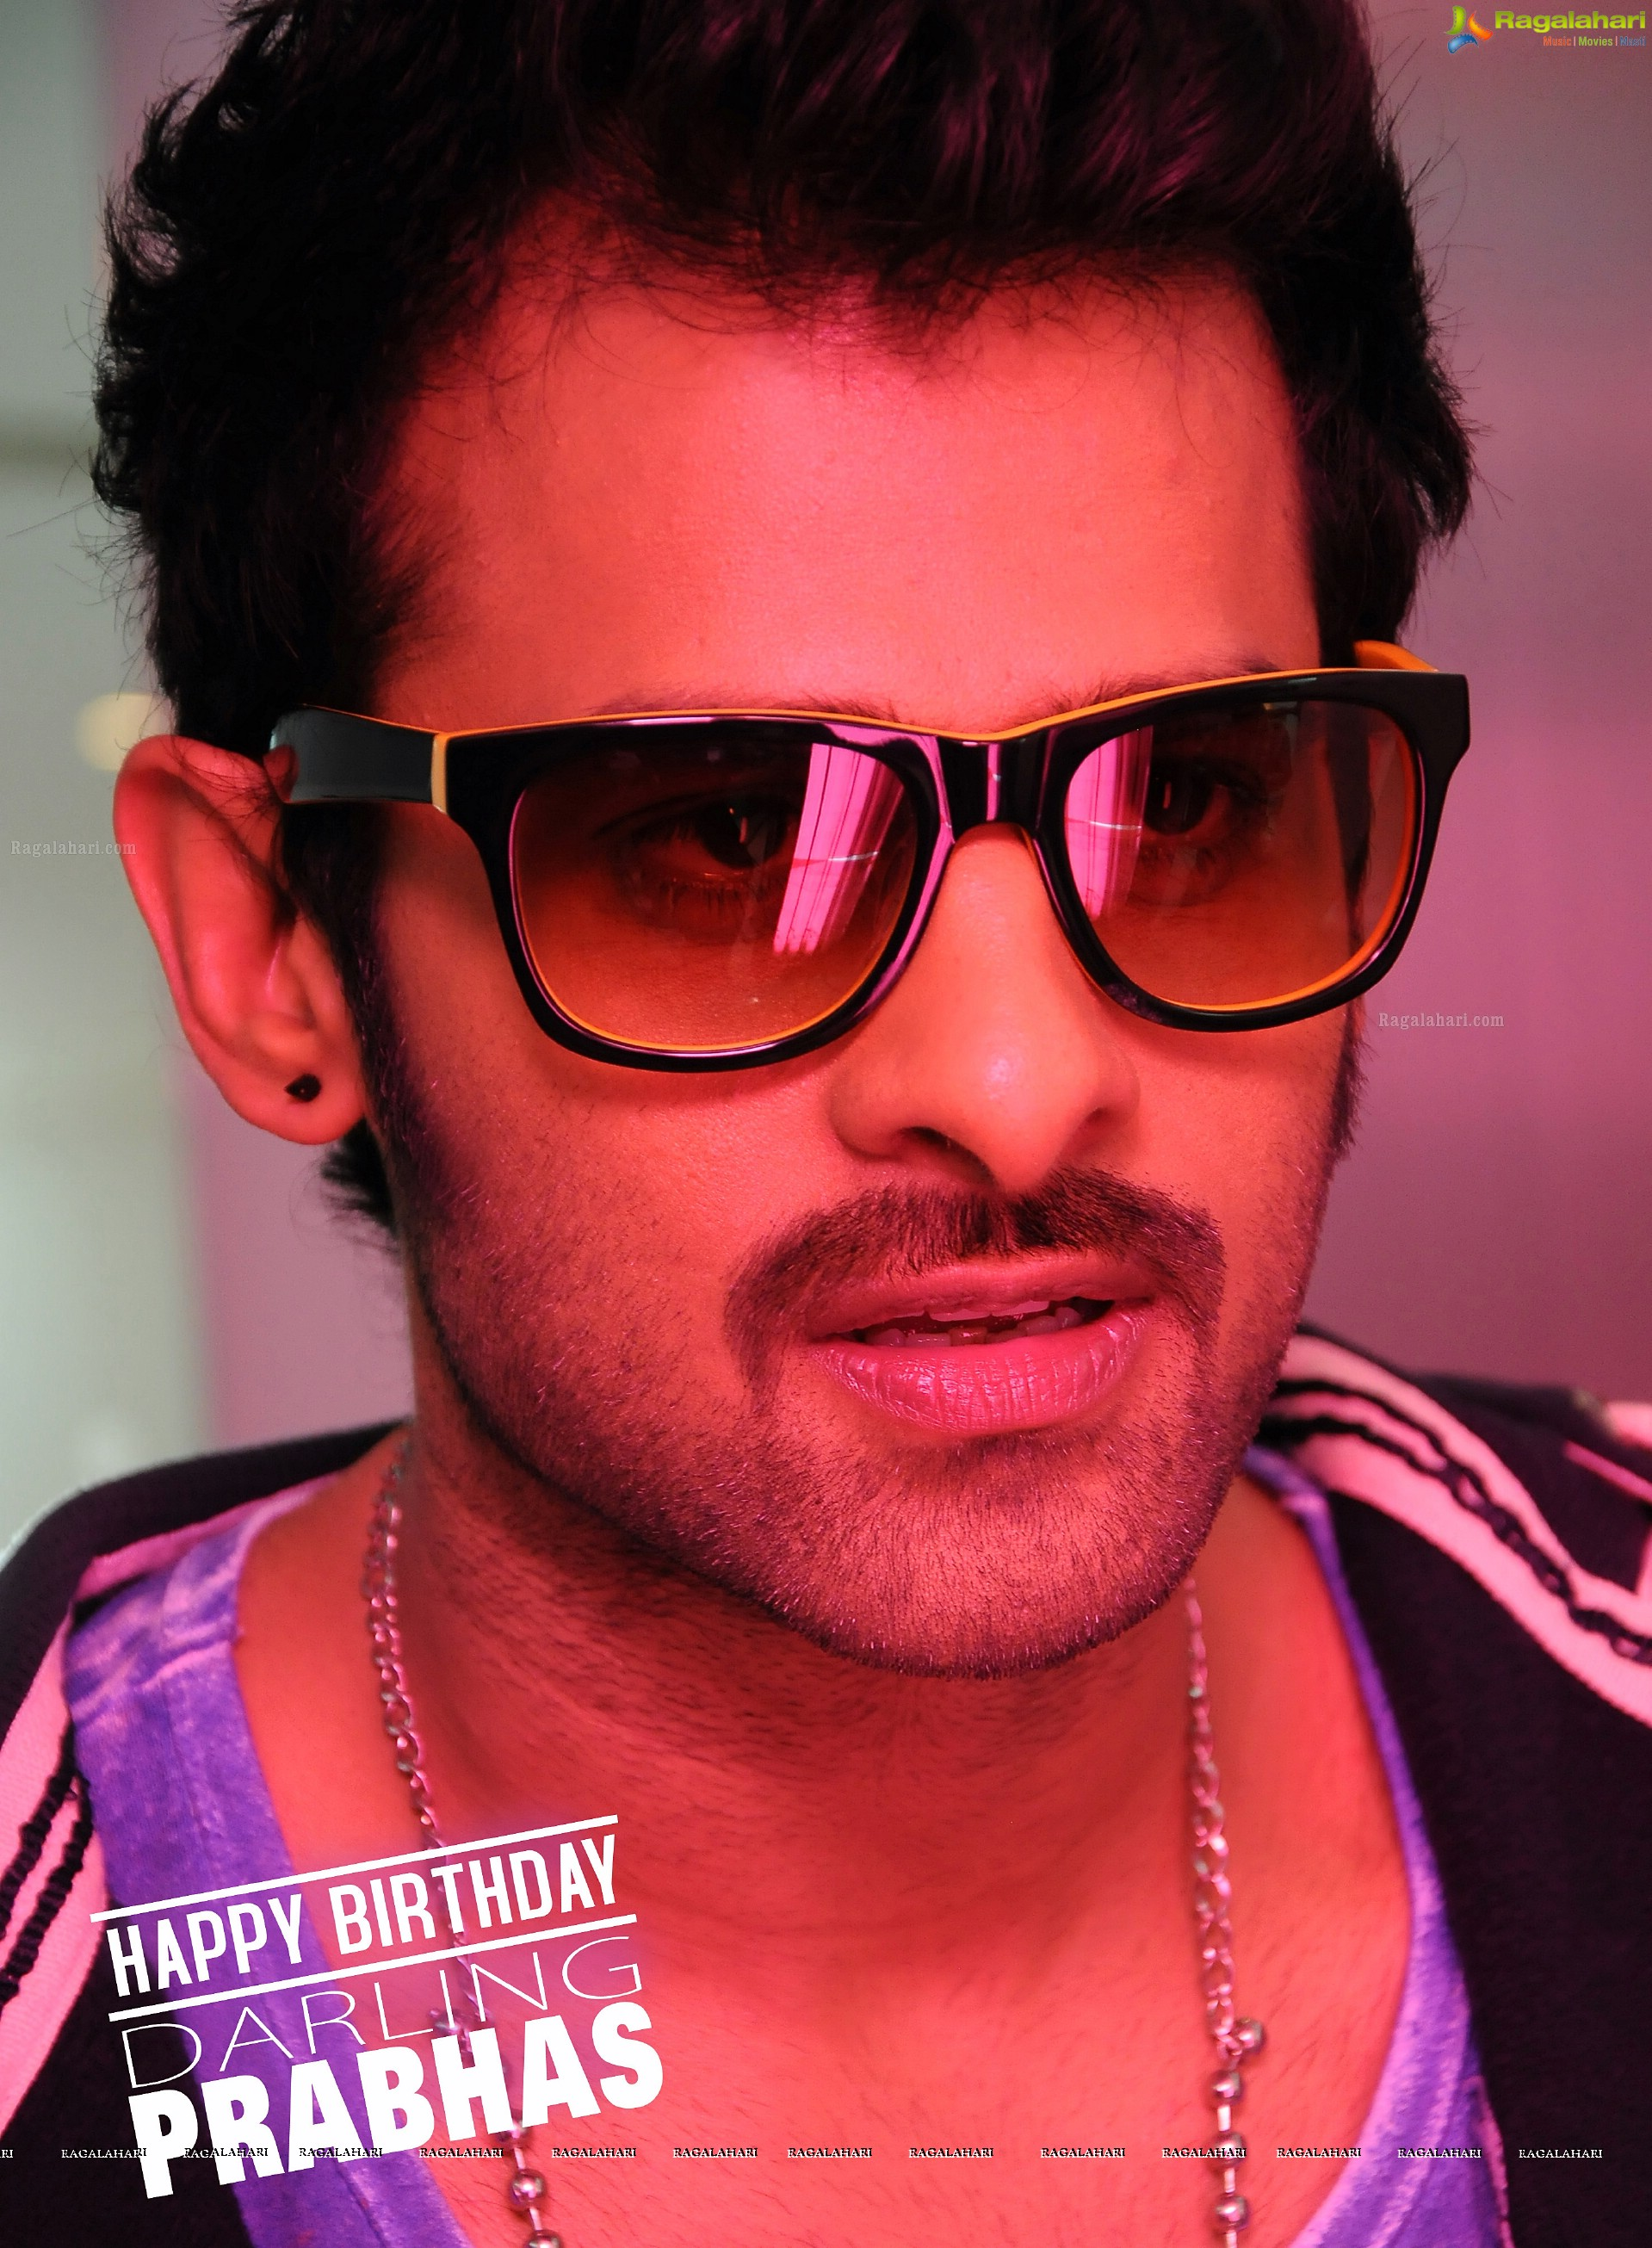 prabhas (hd) image 1001 | latest bollywood actor wallpapers,telugu